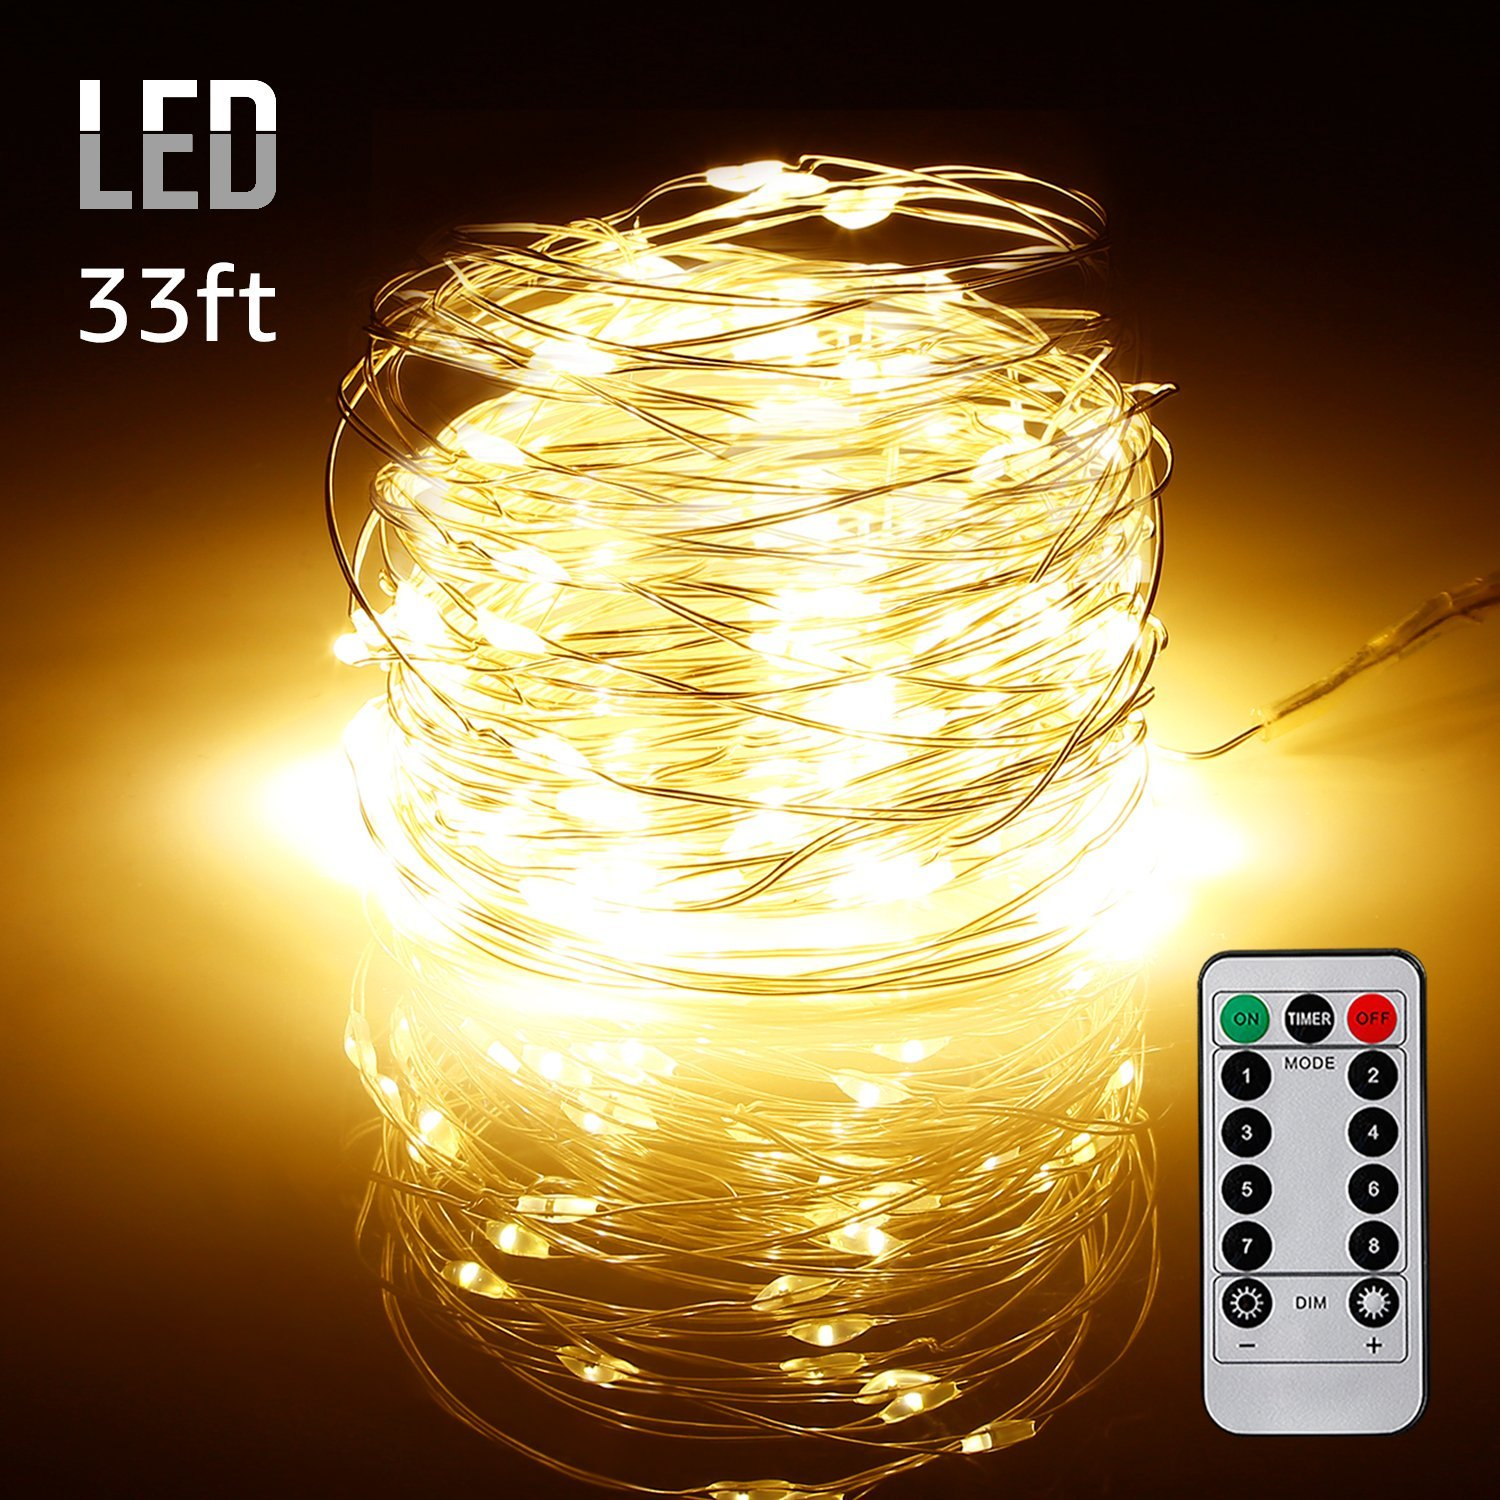 TORCHSTAR 33ft 100 LEDs String Lights, Outdoor USB Dimmable Starry String Lights, Warm White